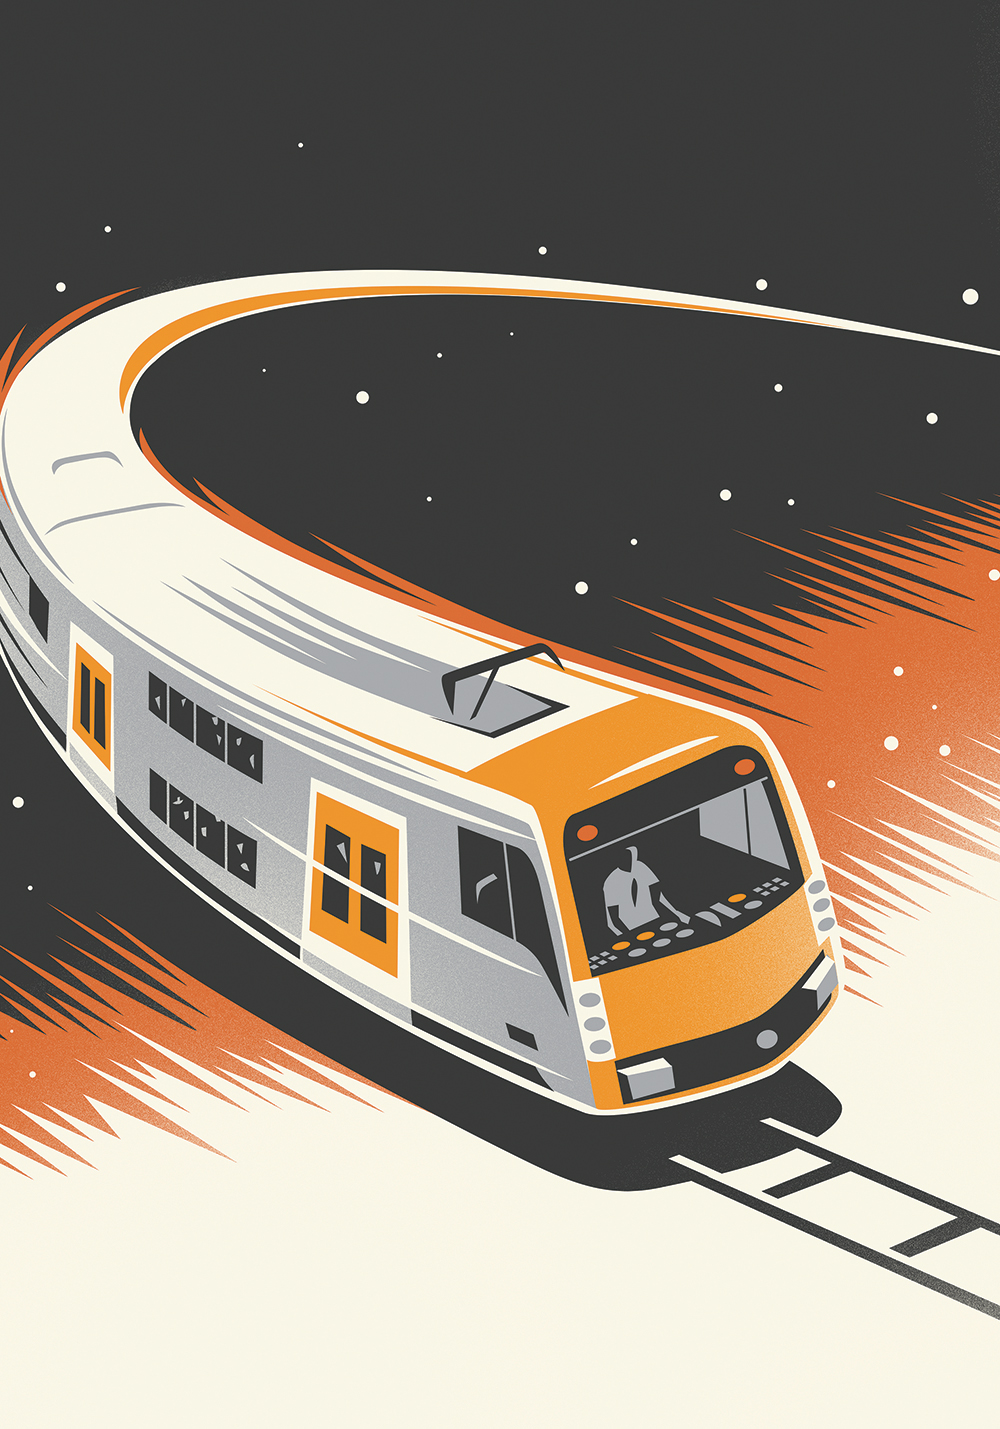 Comet Train deco poster illustration-Dean Gorissen.jpg.jpg